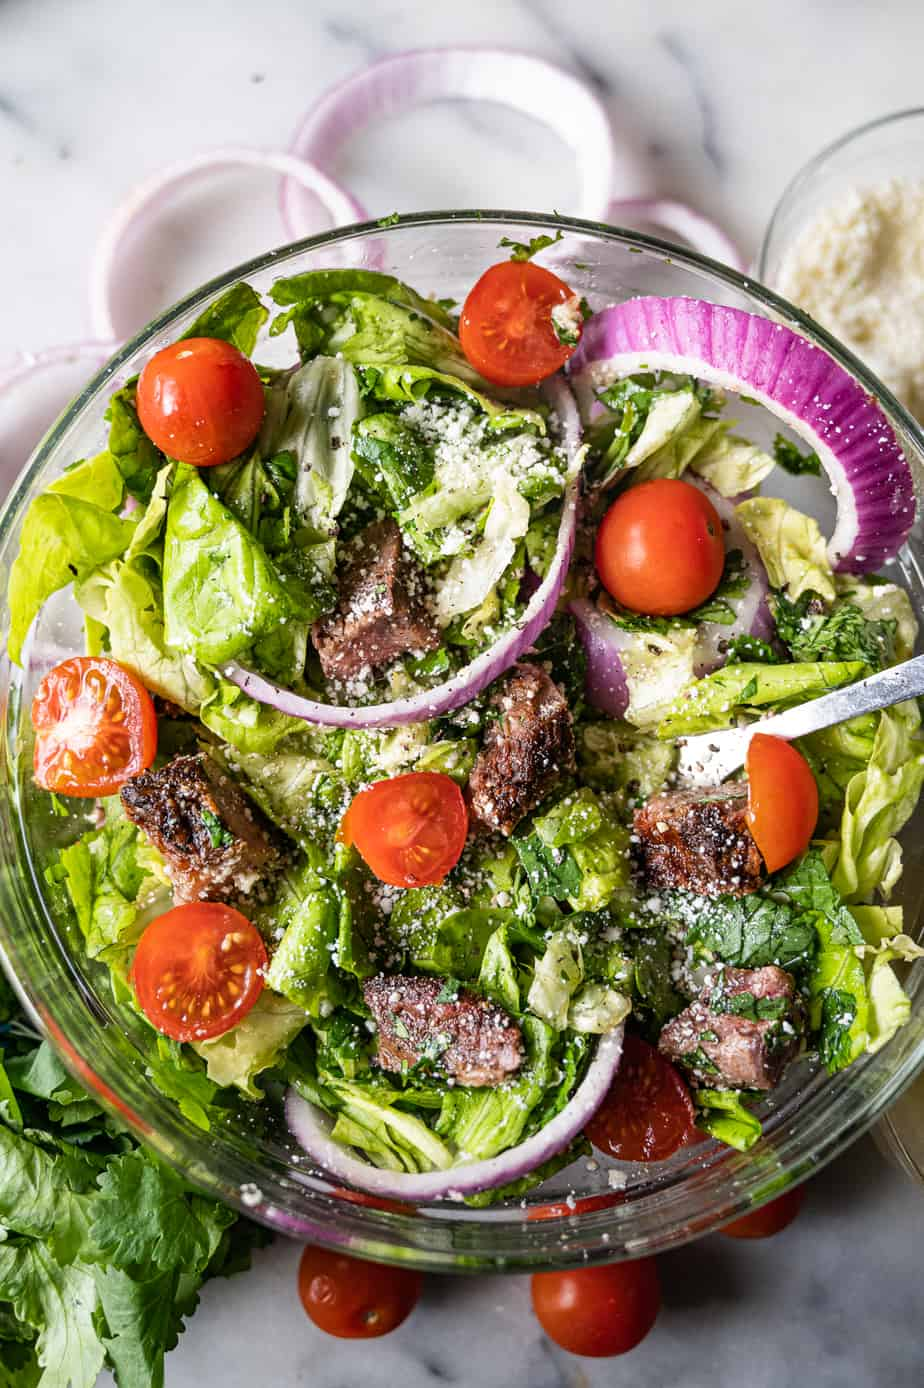 Fajita steak salad with onion and tomatoes in a bowl